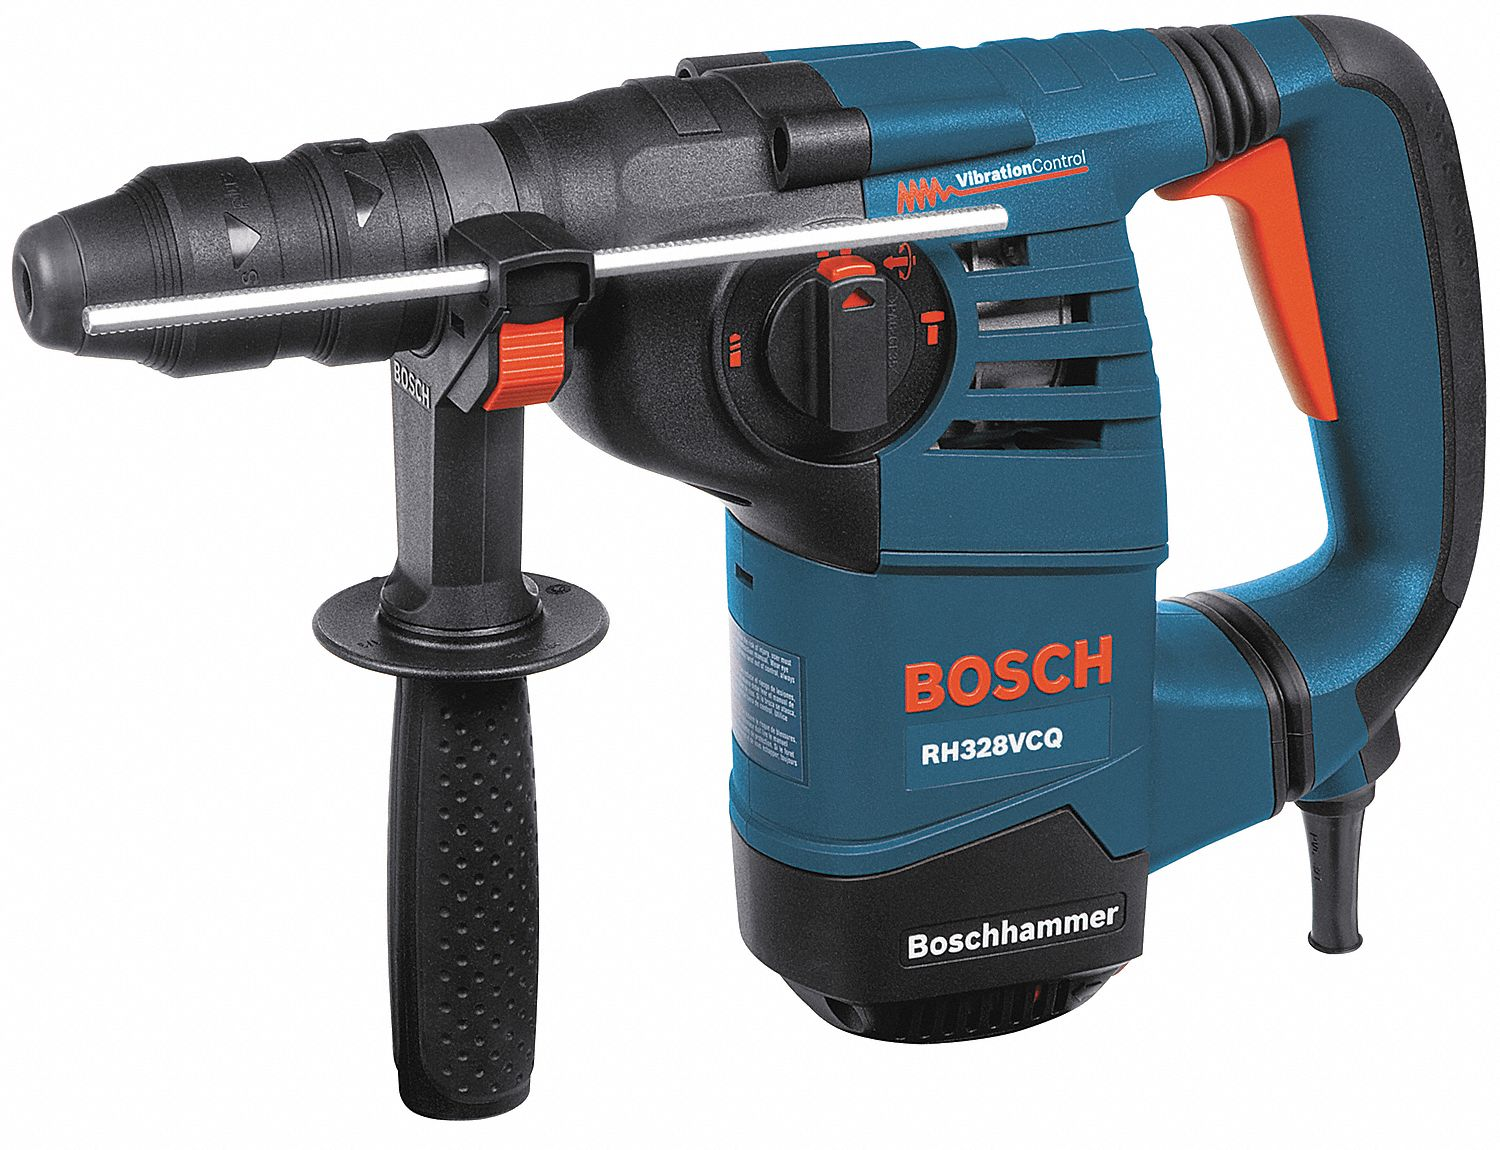 bosch sds plus quick change rotary hammer kit 8 0 amps 0 to 4000 blows per minute 120 voltage. Black Bedroom Furniture Sets. Home Design Ideas